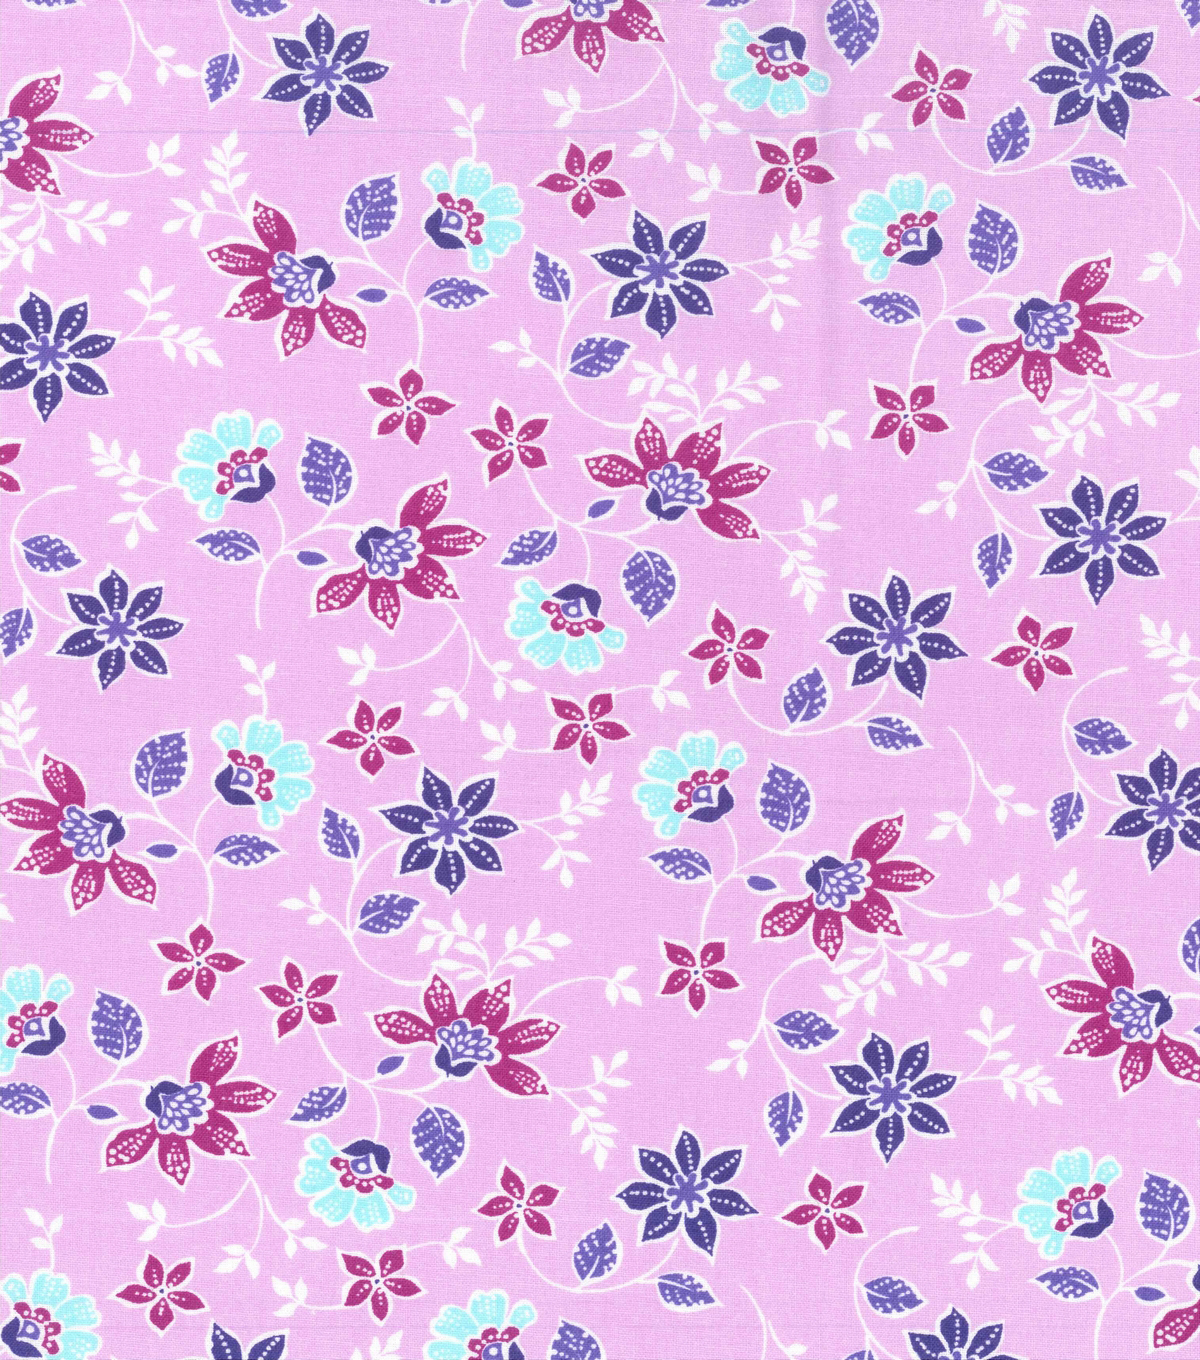 Keepsake Calico Cotton Fabric 43\u0022-Small Butterfly Floral on Purple